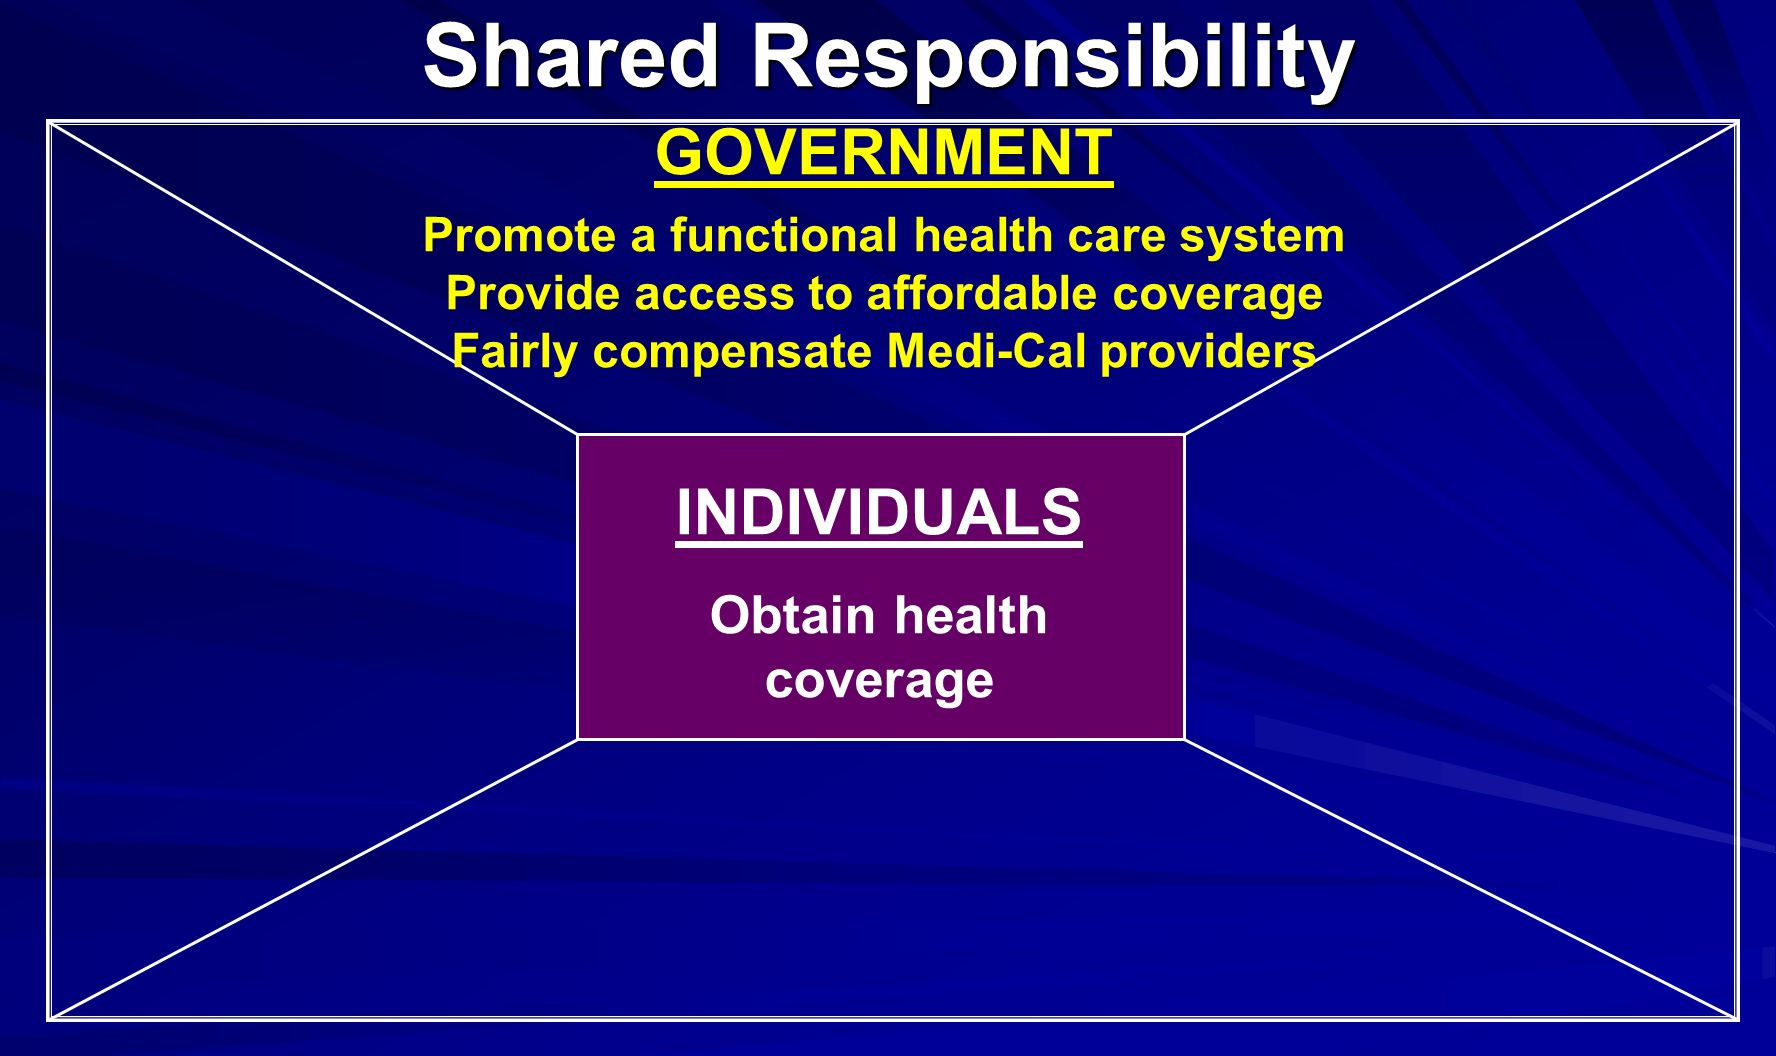 INDIVIDUALS Obtain health coverage Shared Responsibility GOVERNMENT Promote a functional health care system Provide access to affordable coverage Fairly compensate Medi-Cal providers